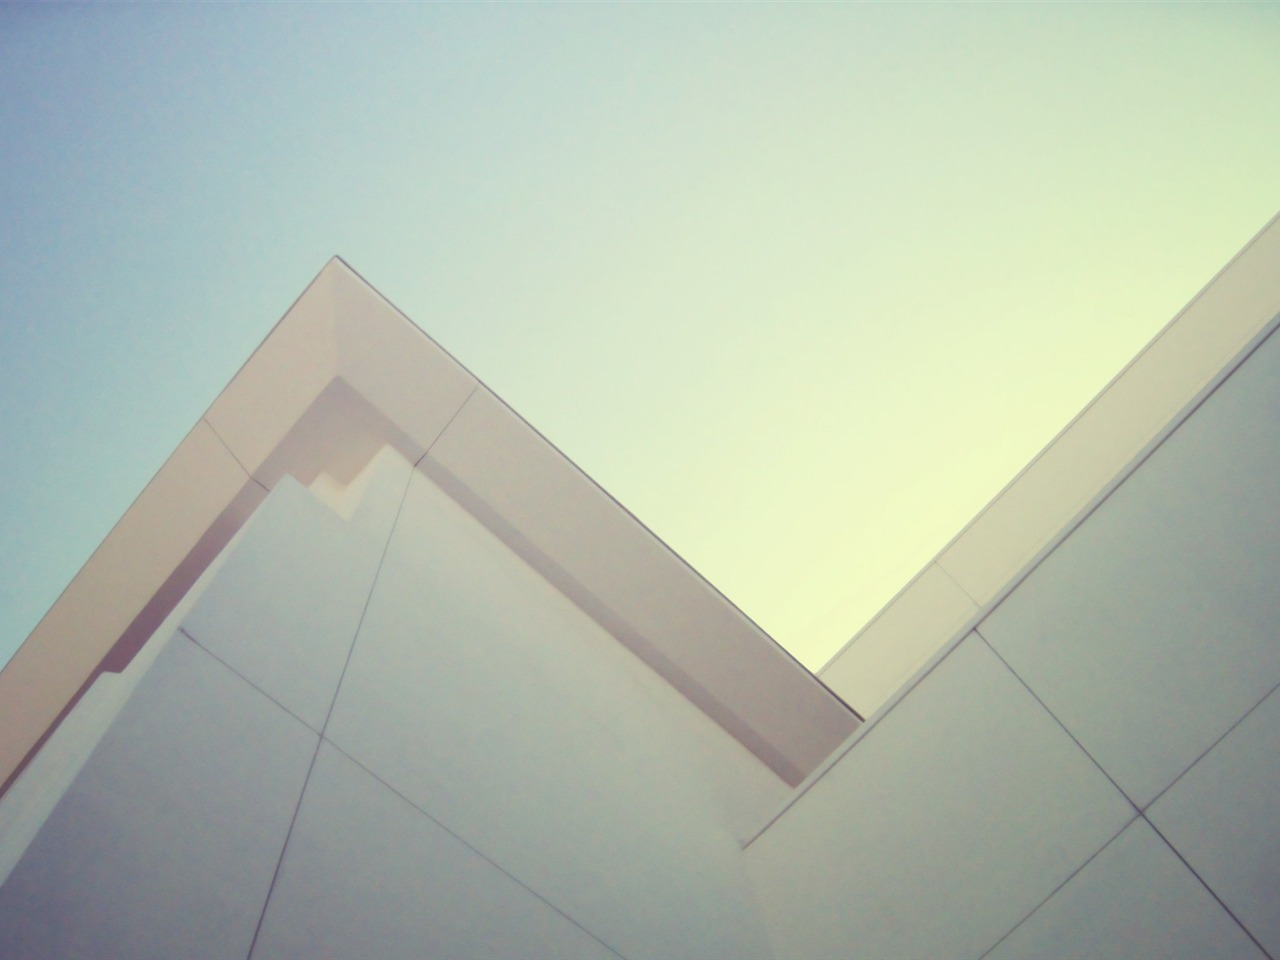 Architectural point of view-LOMO desktop wallpaper - 1280x960 wallpaper download